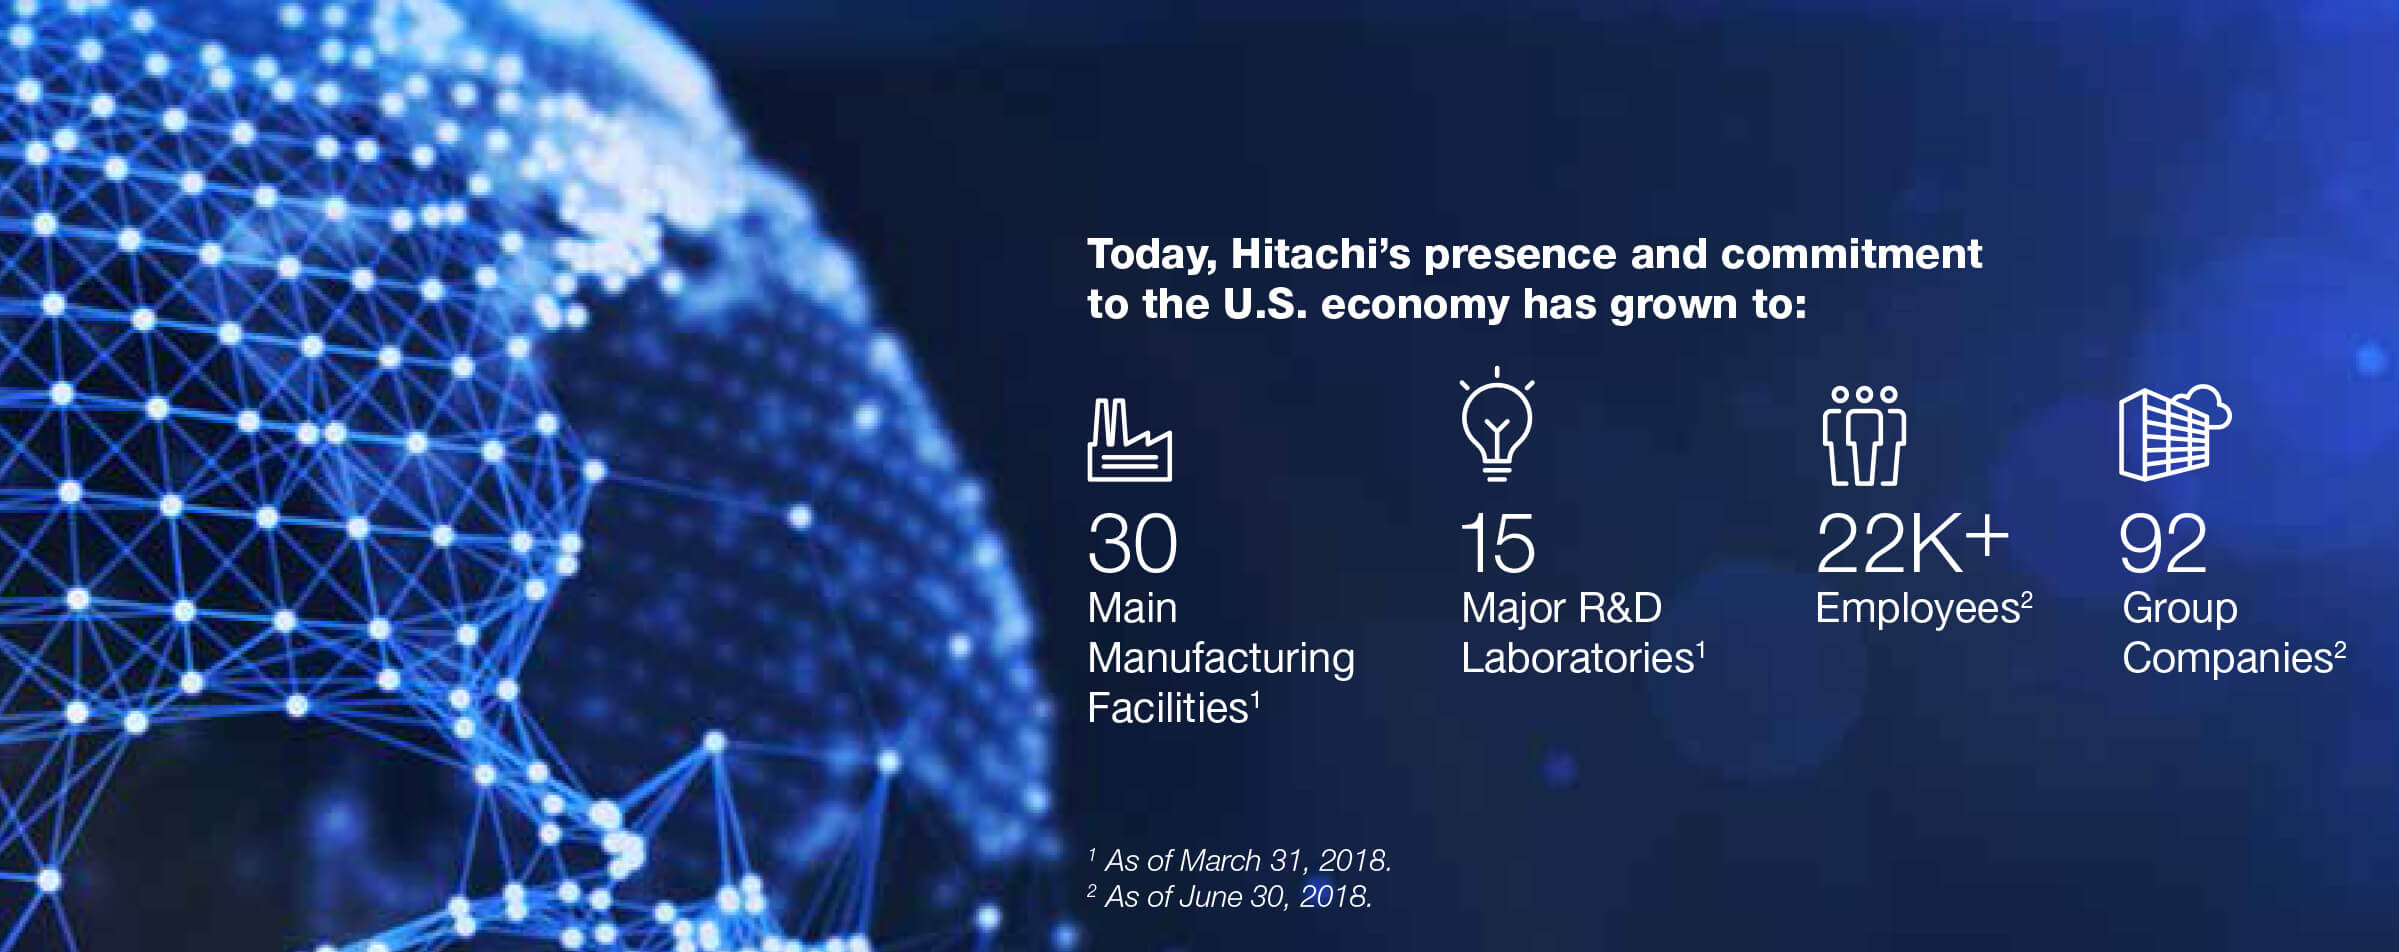 Hitachi in North America